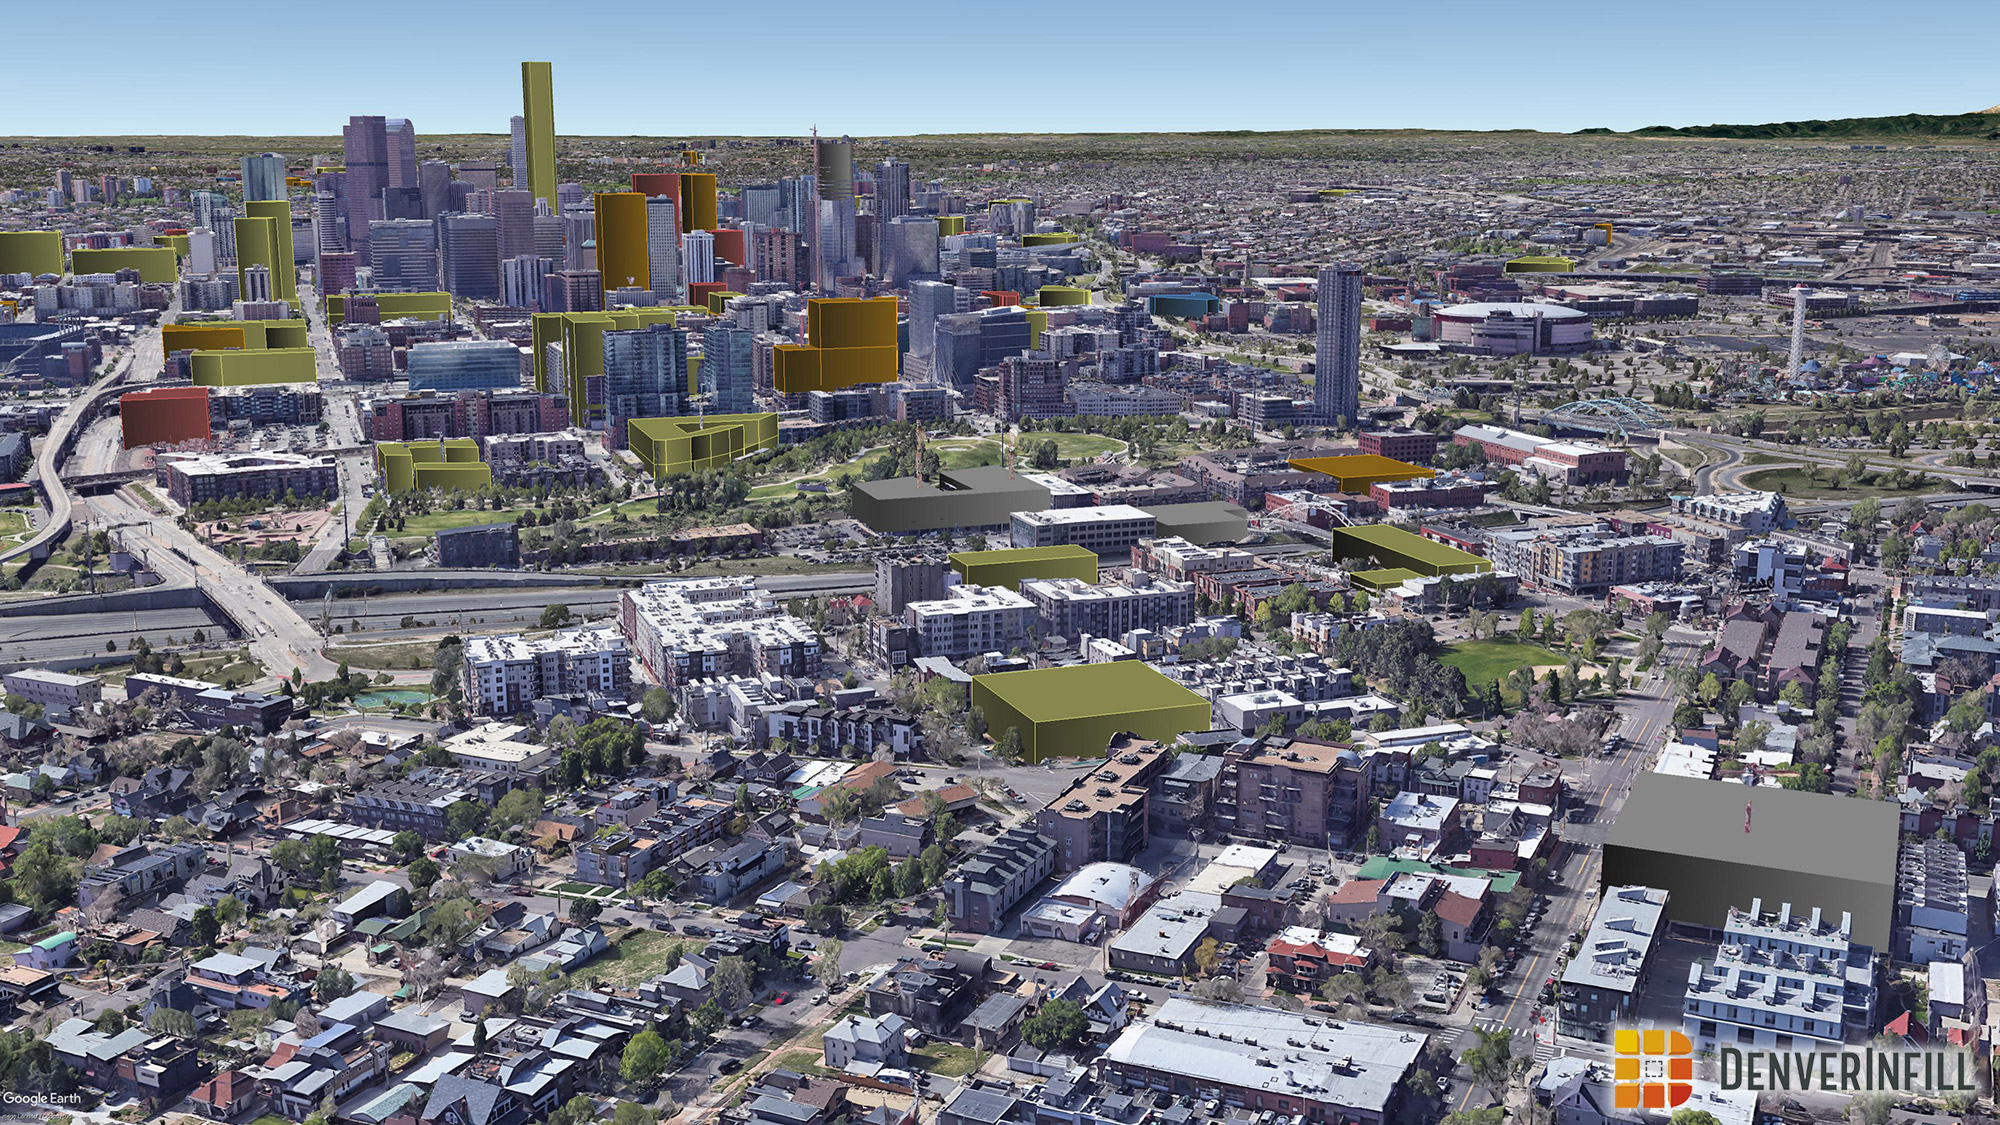 Denver 3D future skyline - view 4